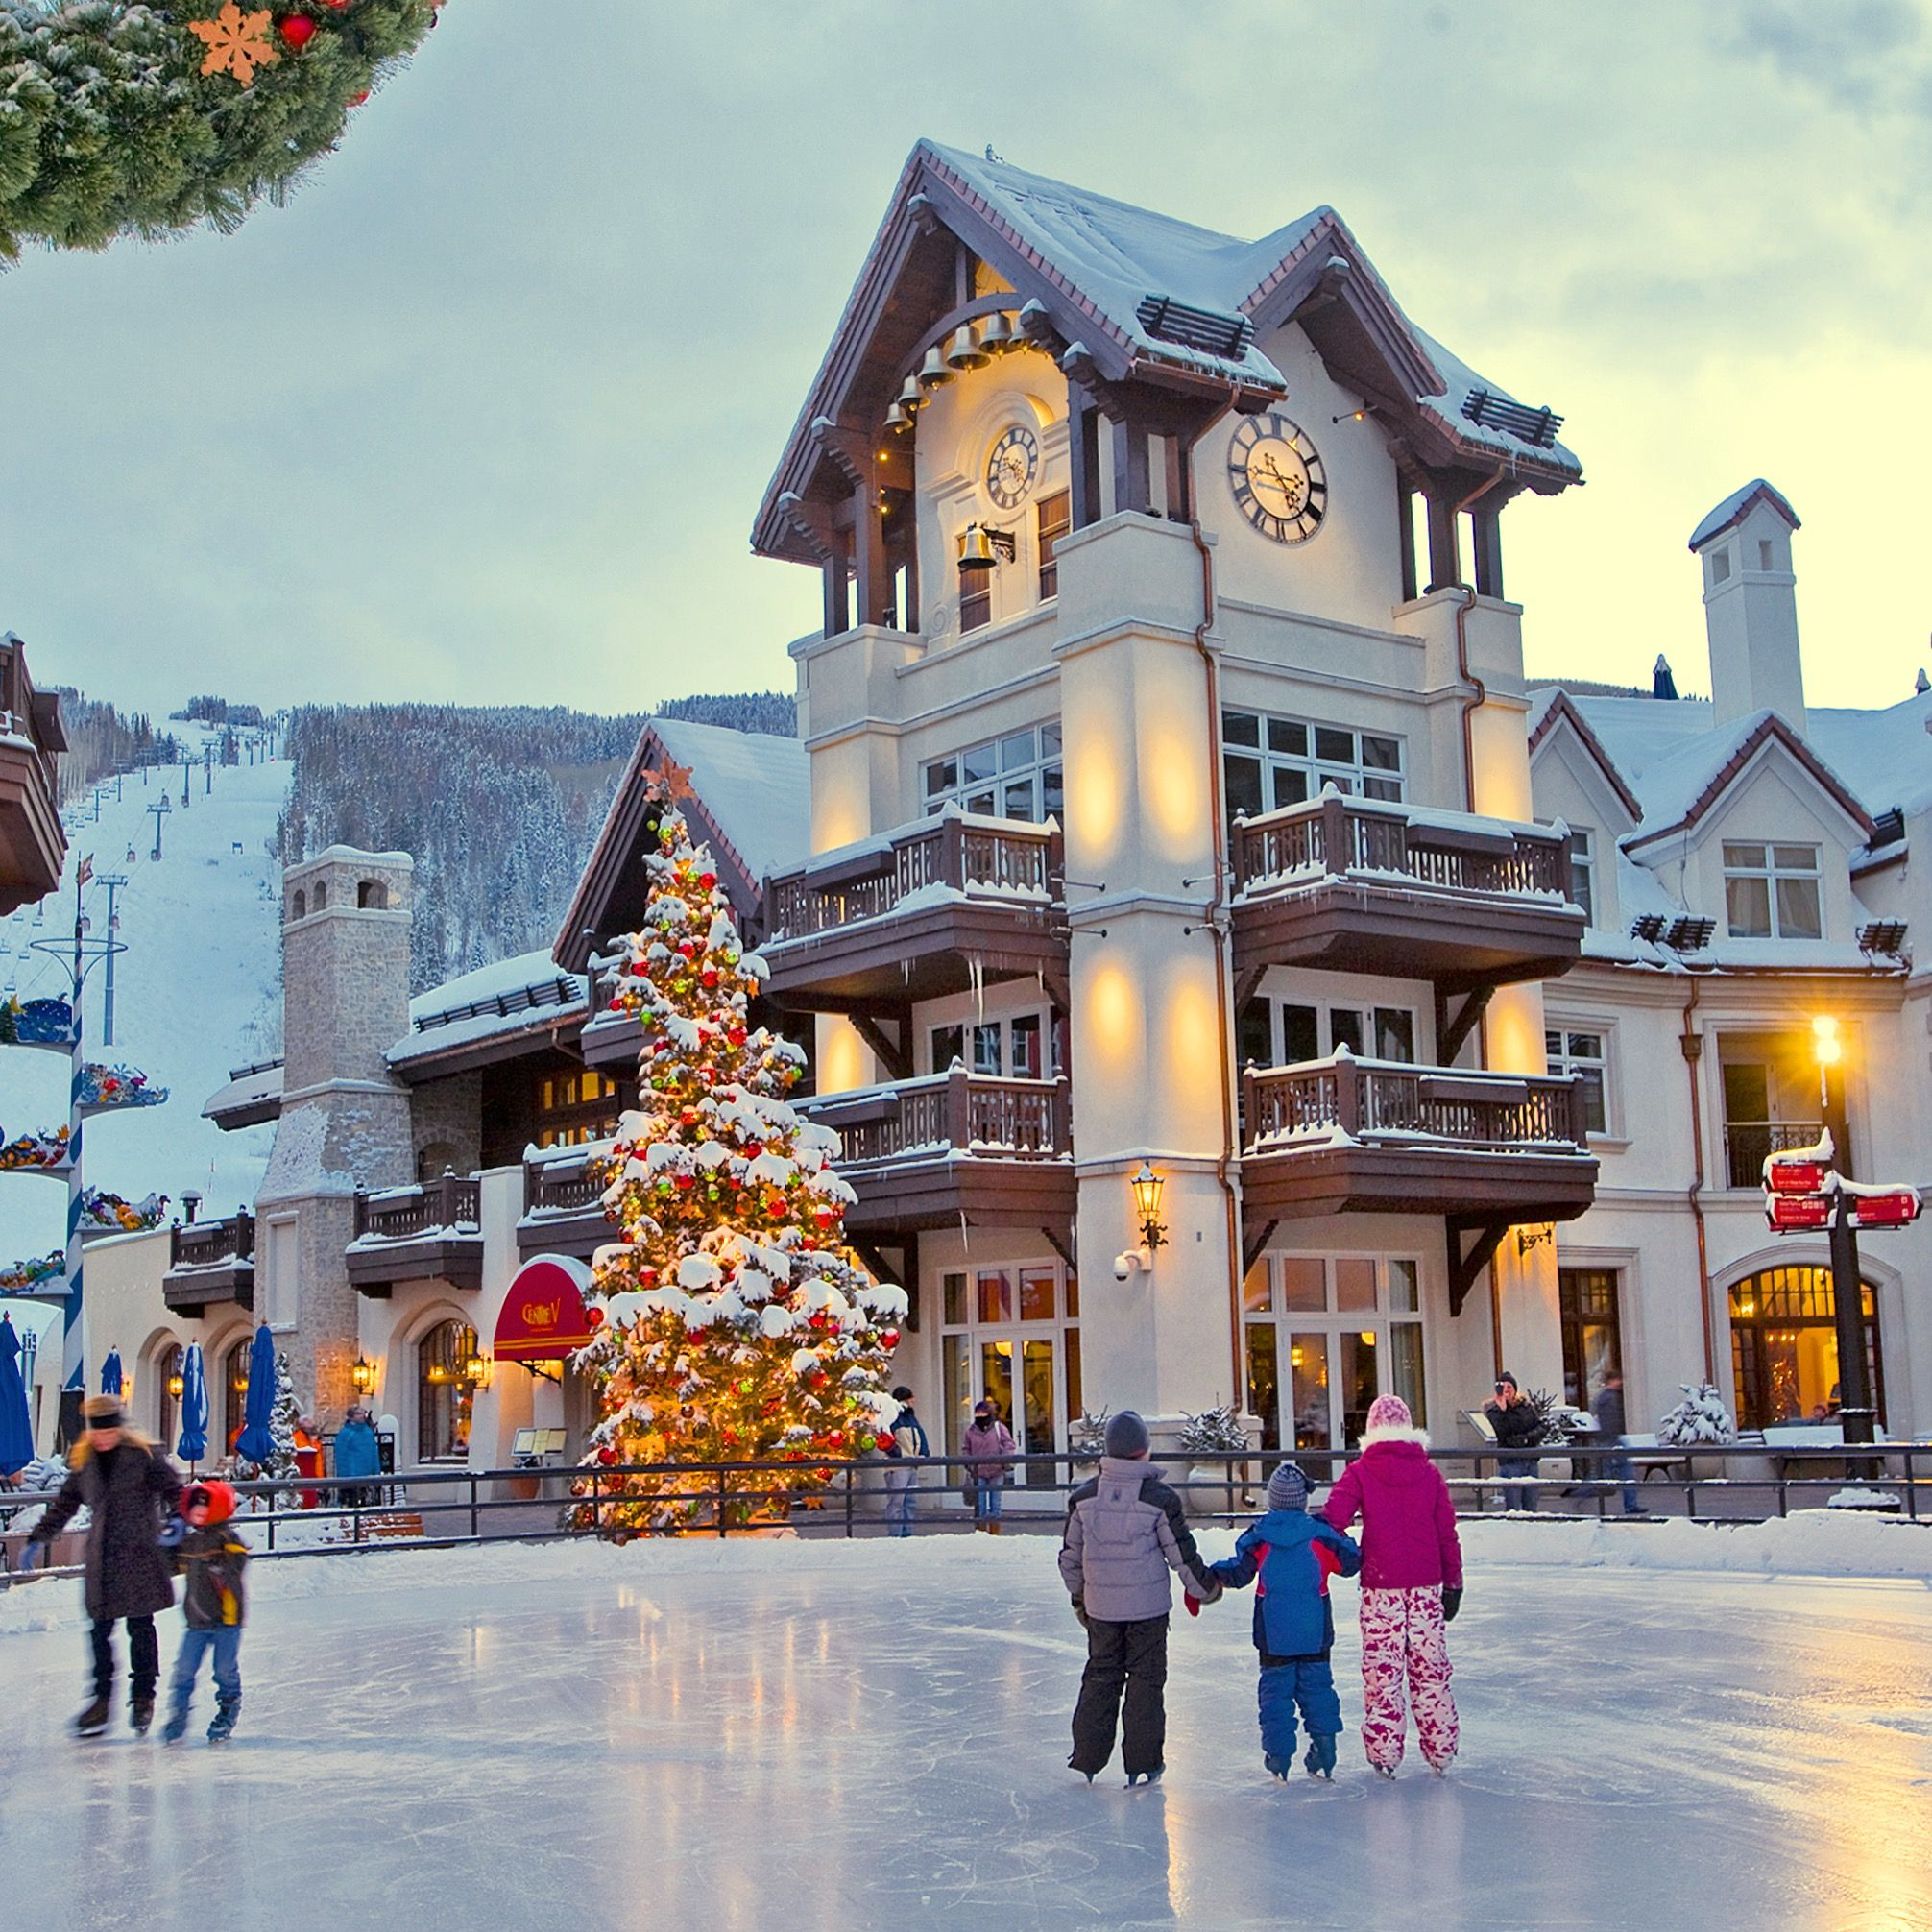 Pictures Of Vail Colorado In Winter